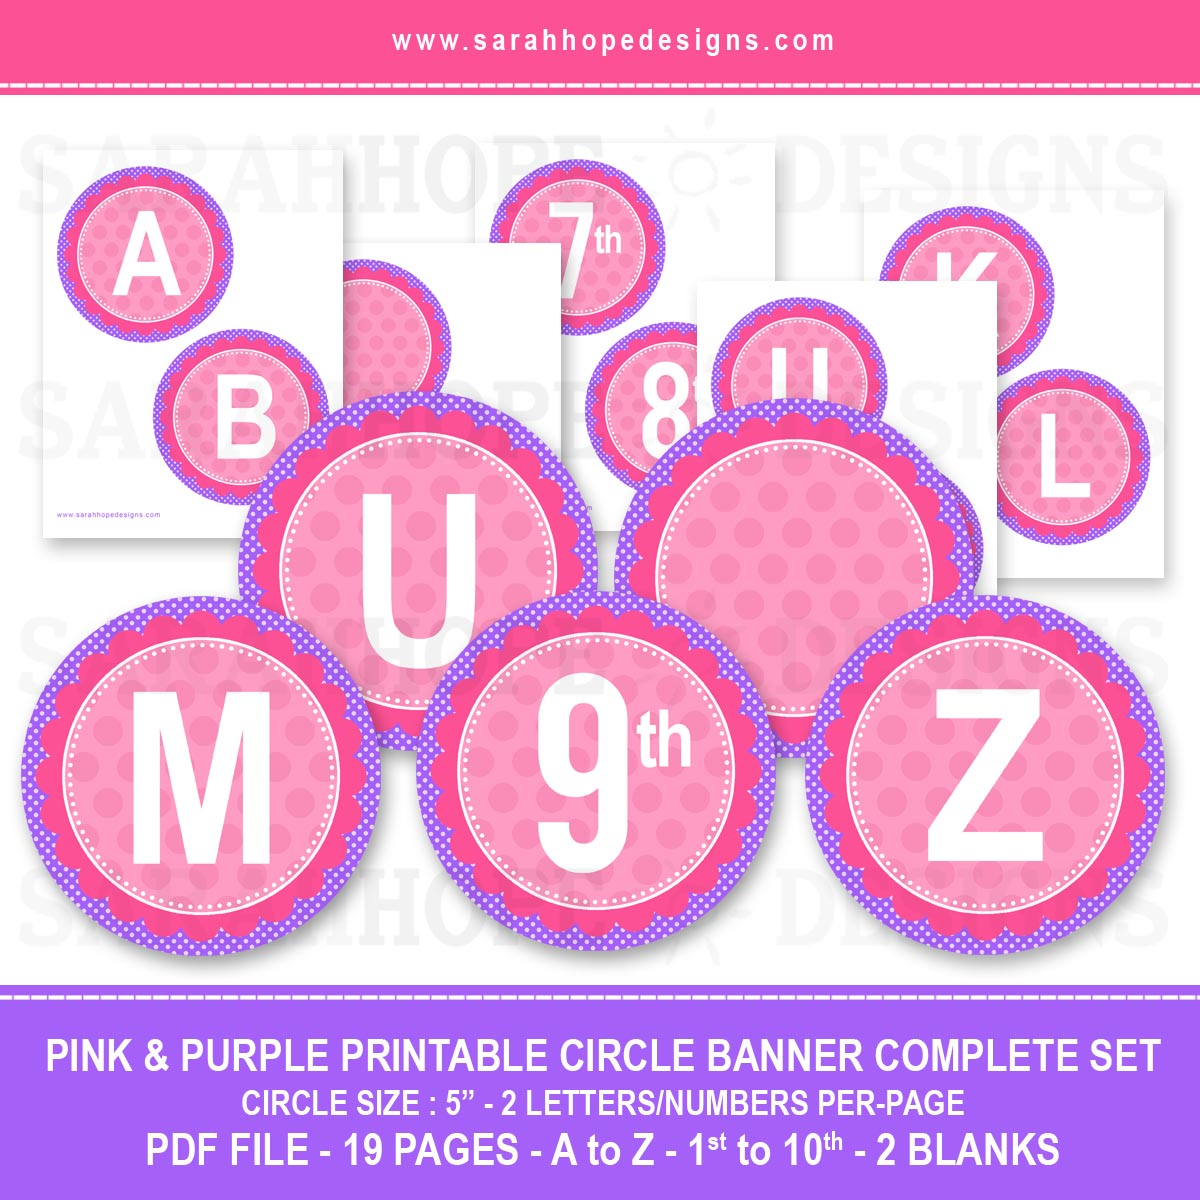 photograph regarding Free Printable Alphabet Letters for Banners named Spell Out A thing With Individuals Totally free Alphabet Circle Banners